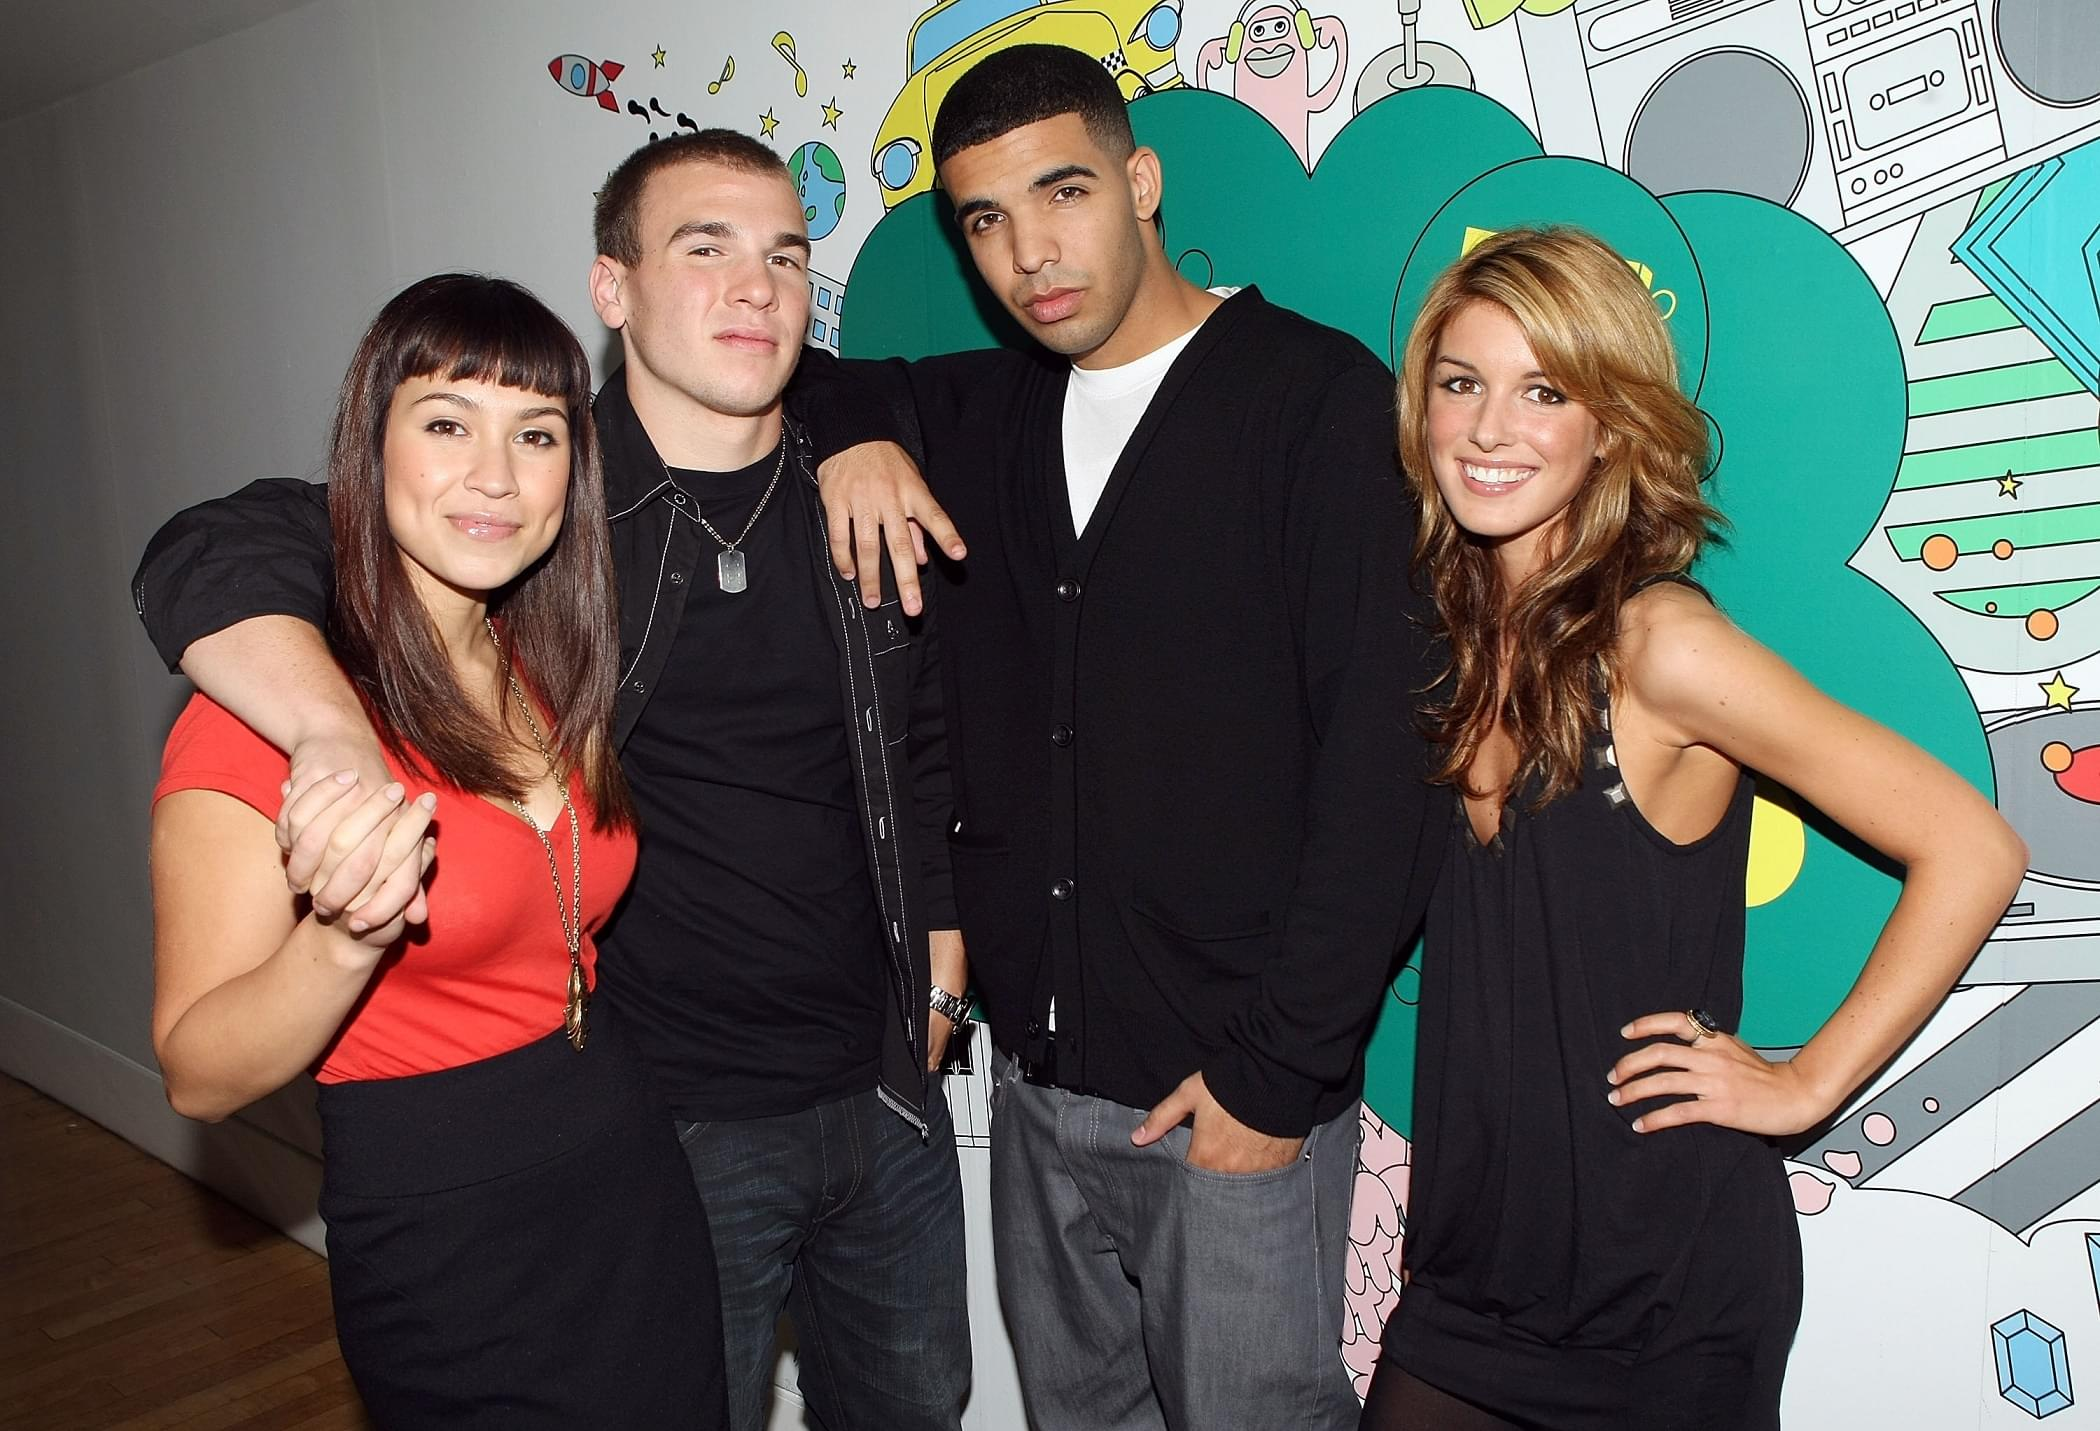 WATCH: The Cast of 'Degrassi' Reunites for Drake's 'I'm Upset' Music Video